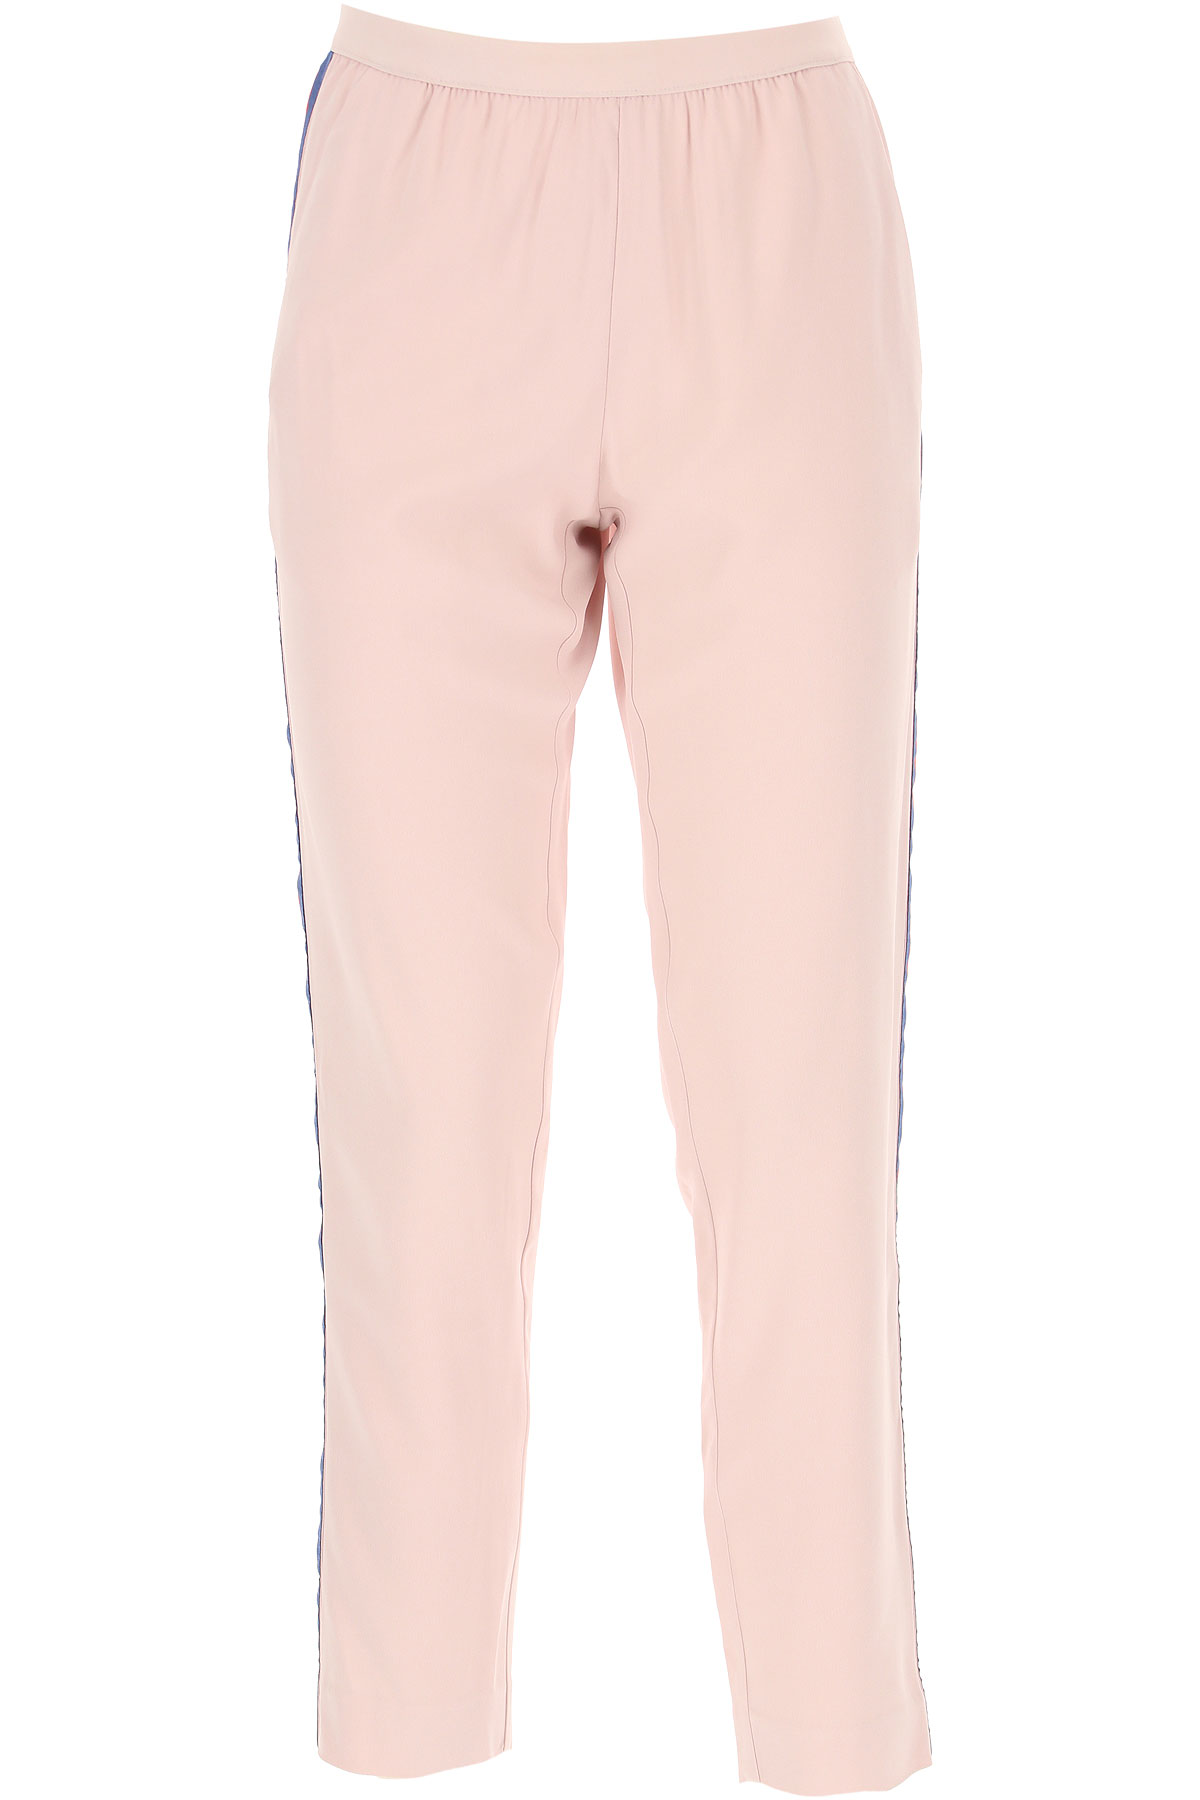 Zadig & Voltaire Pants for Women On Sale, Pale Pink, acetate, 2019, 26 28